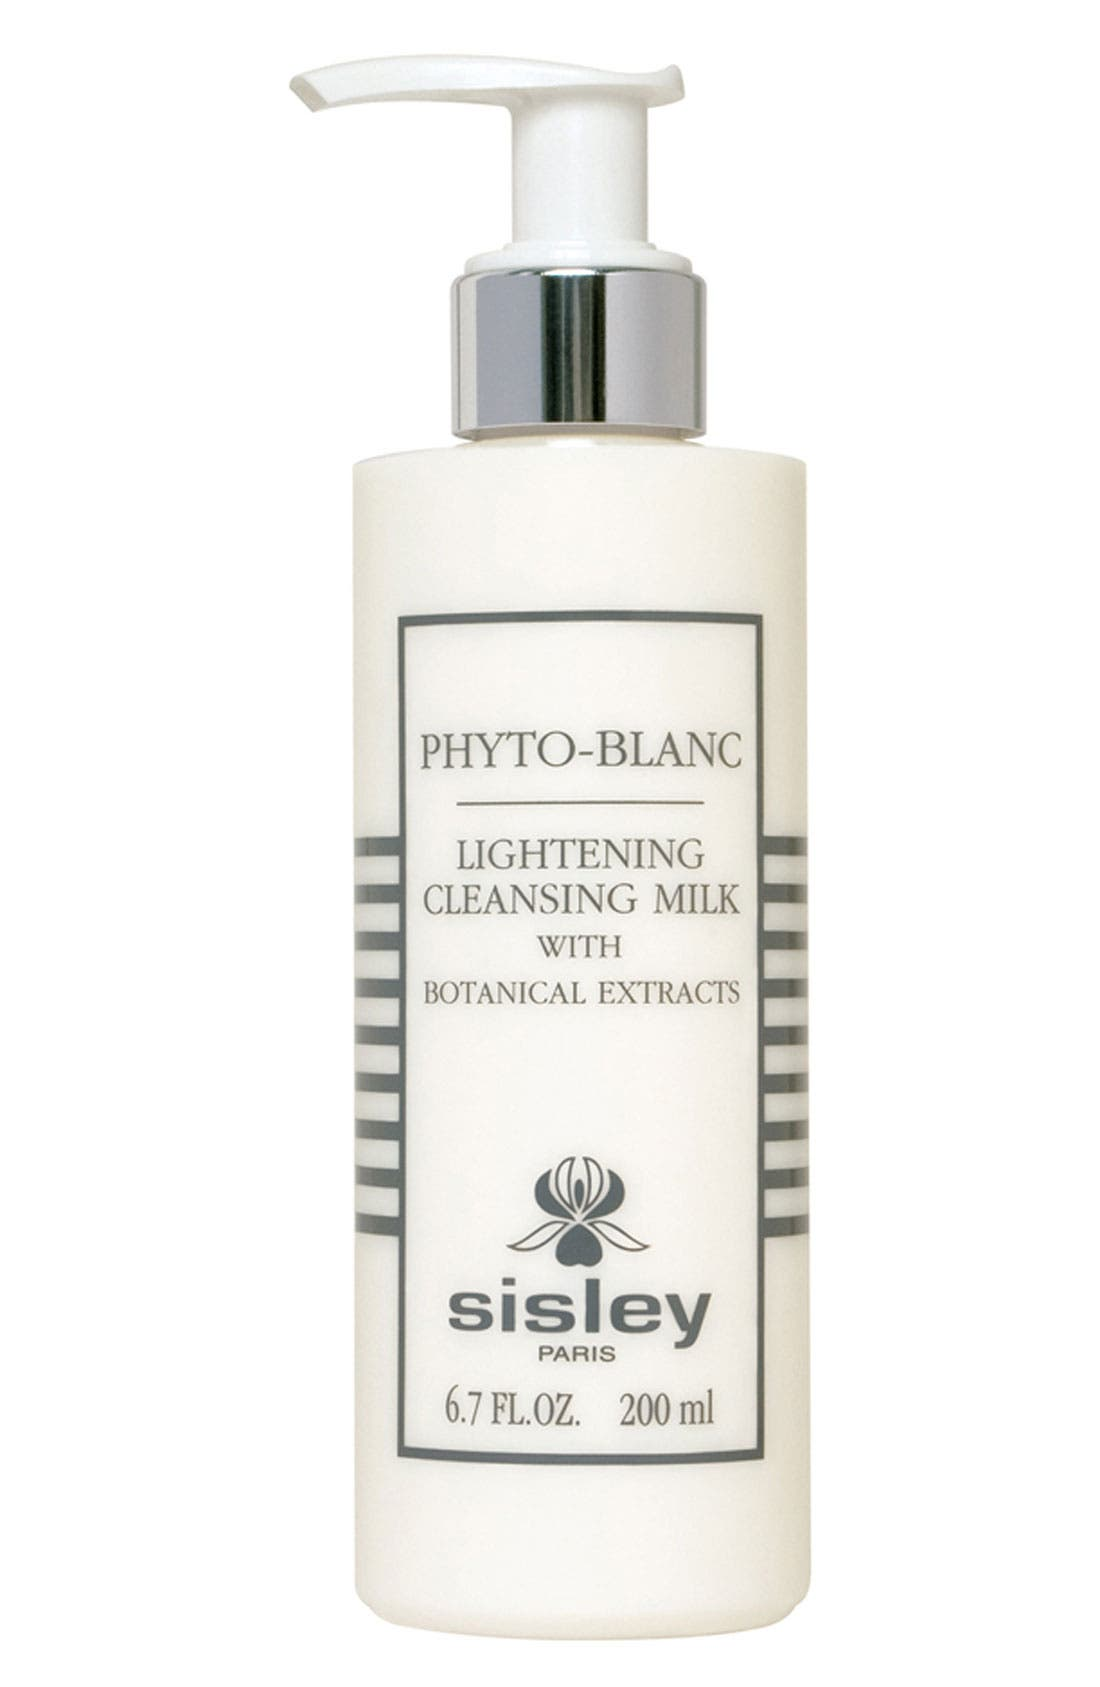 Sisley Paris 'Phyto-Blanc' Lightening Cleansing Milk with Botanical Extracts